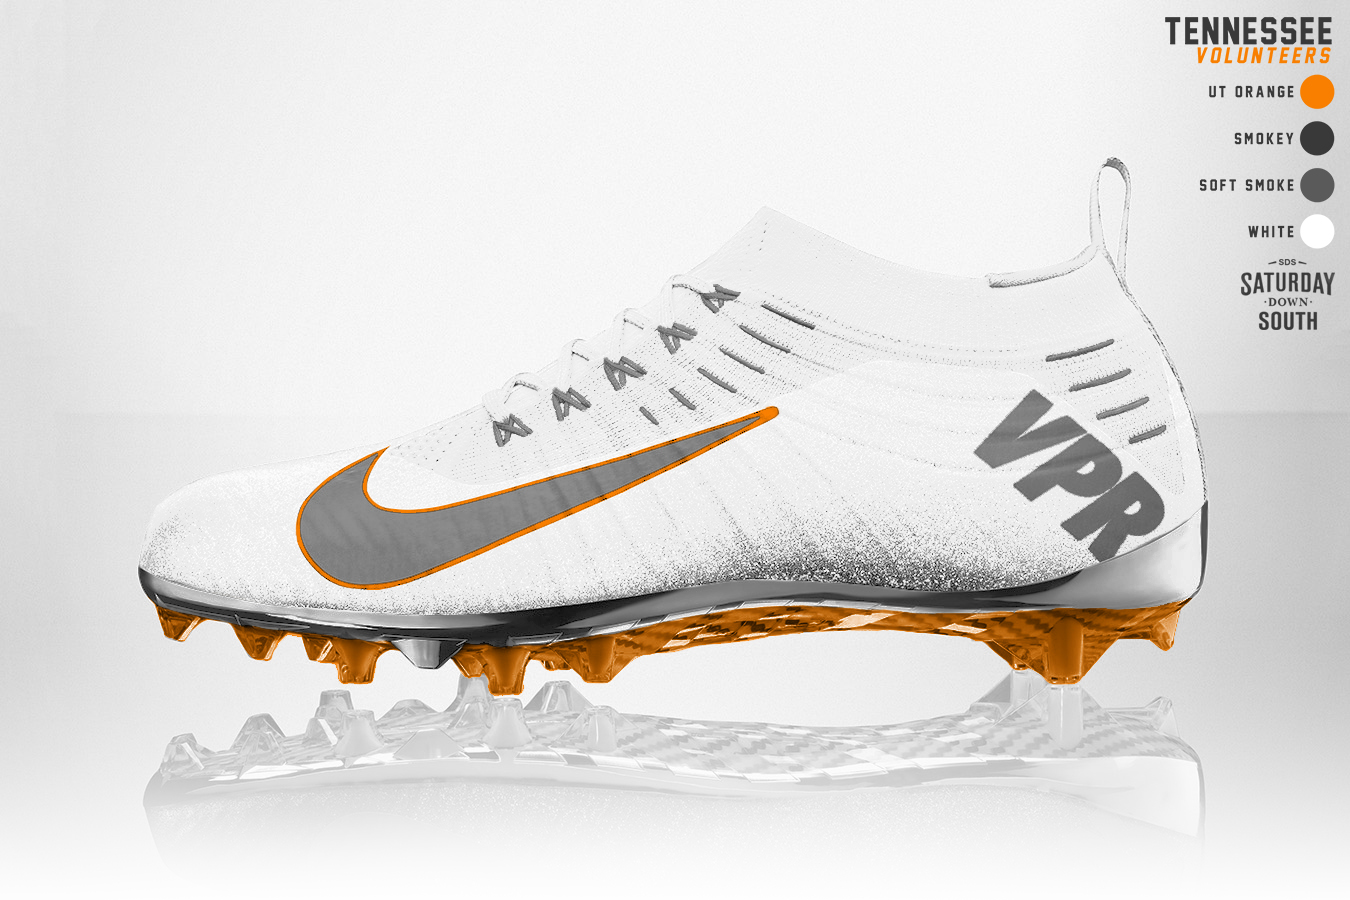 nike swoosh template - 2015 tennessee nike uniform helmet concepts